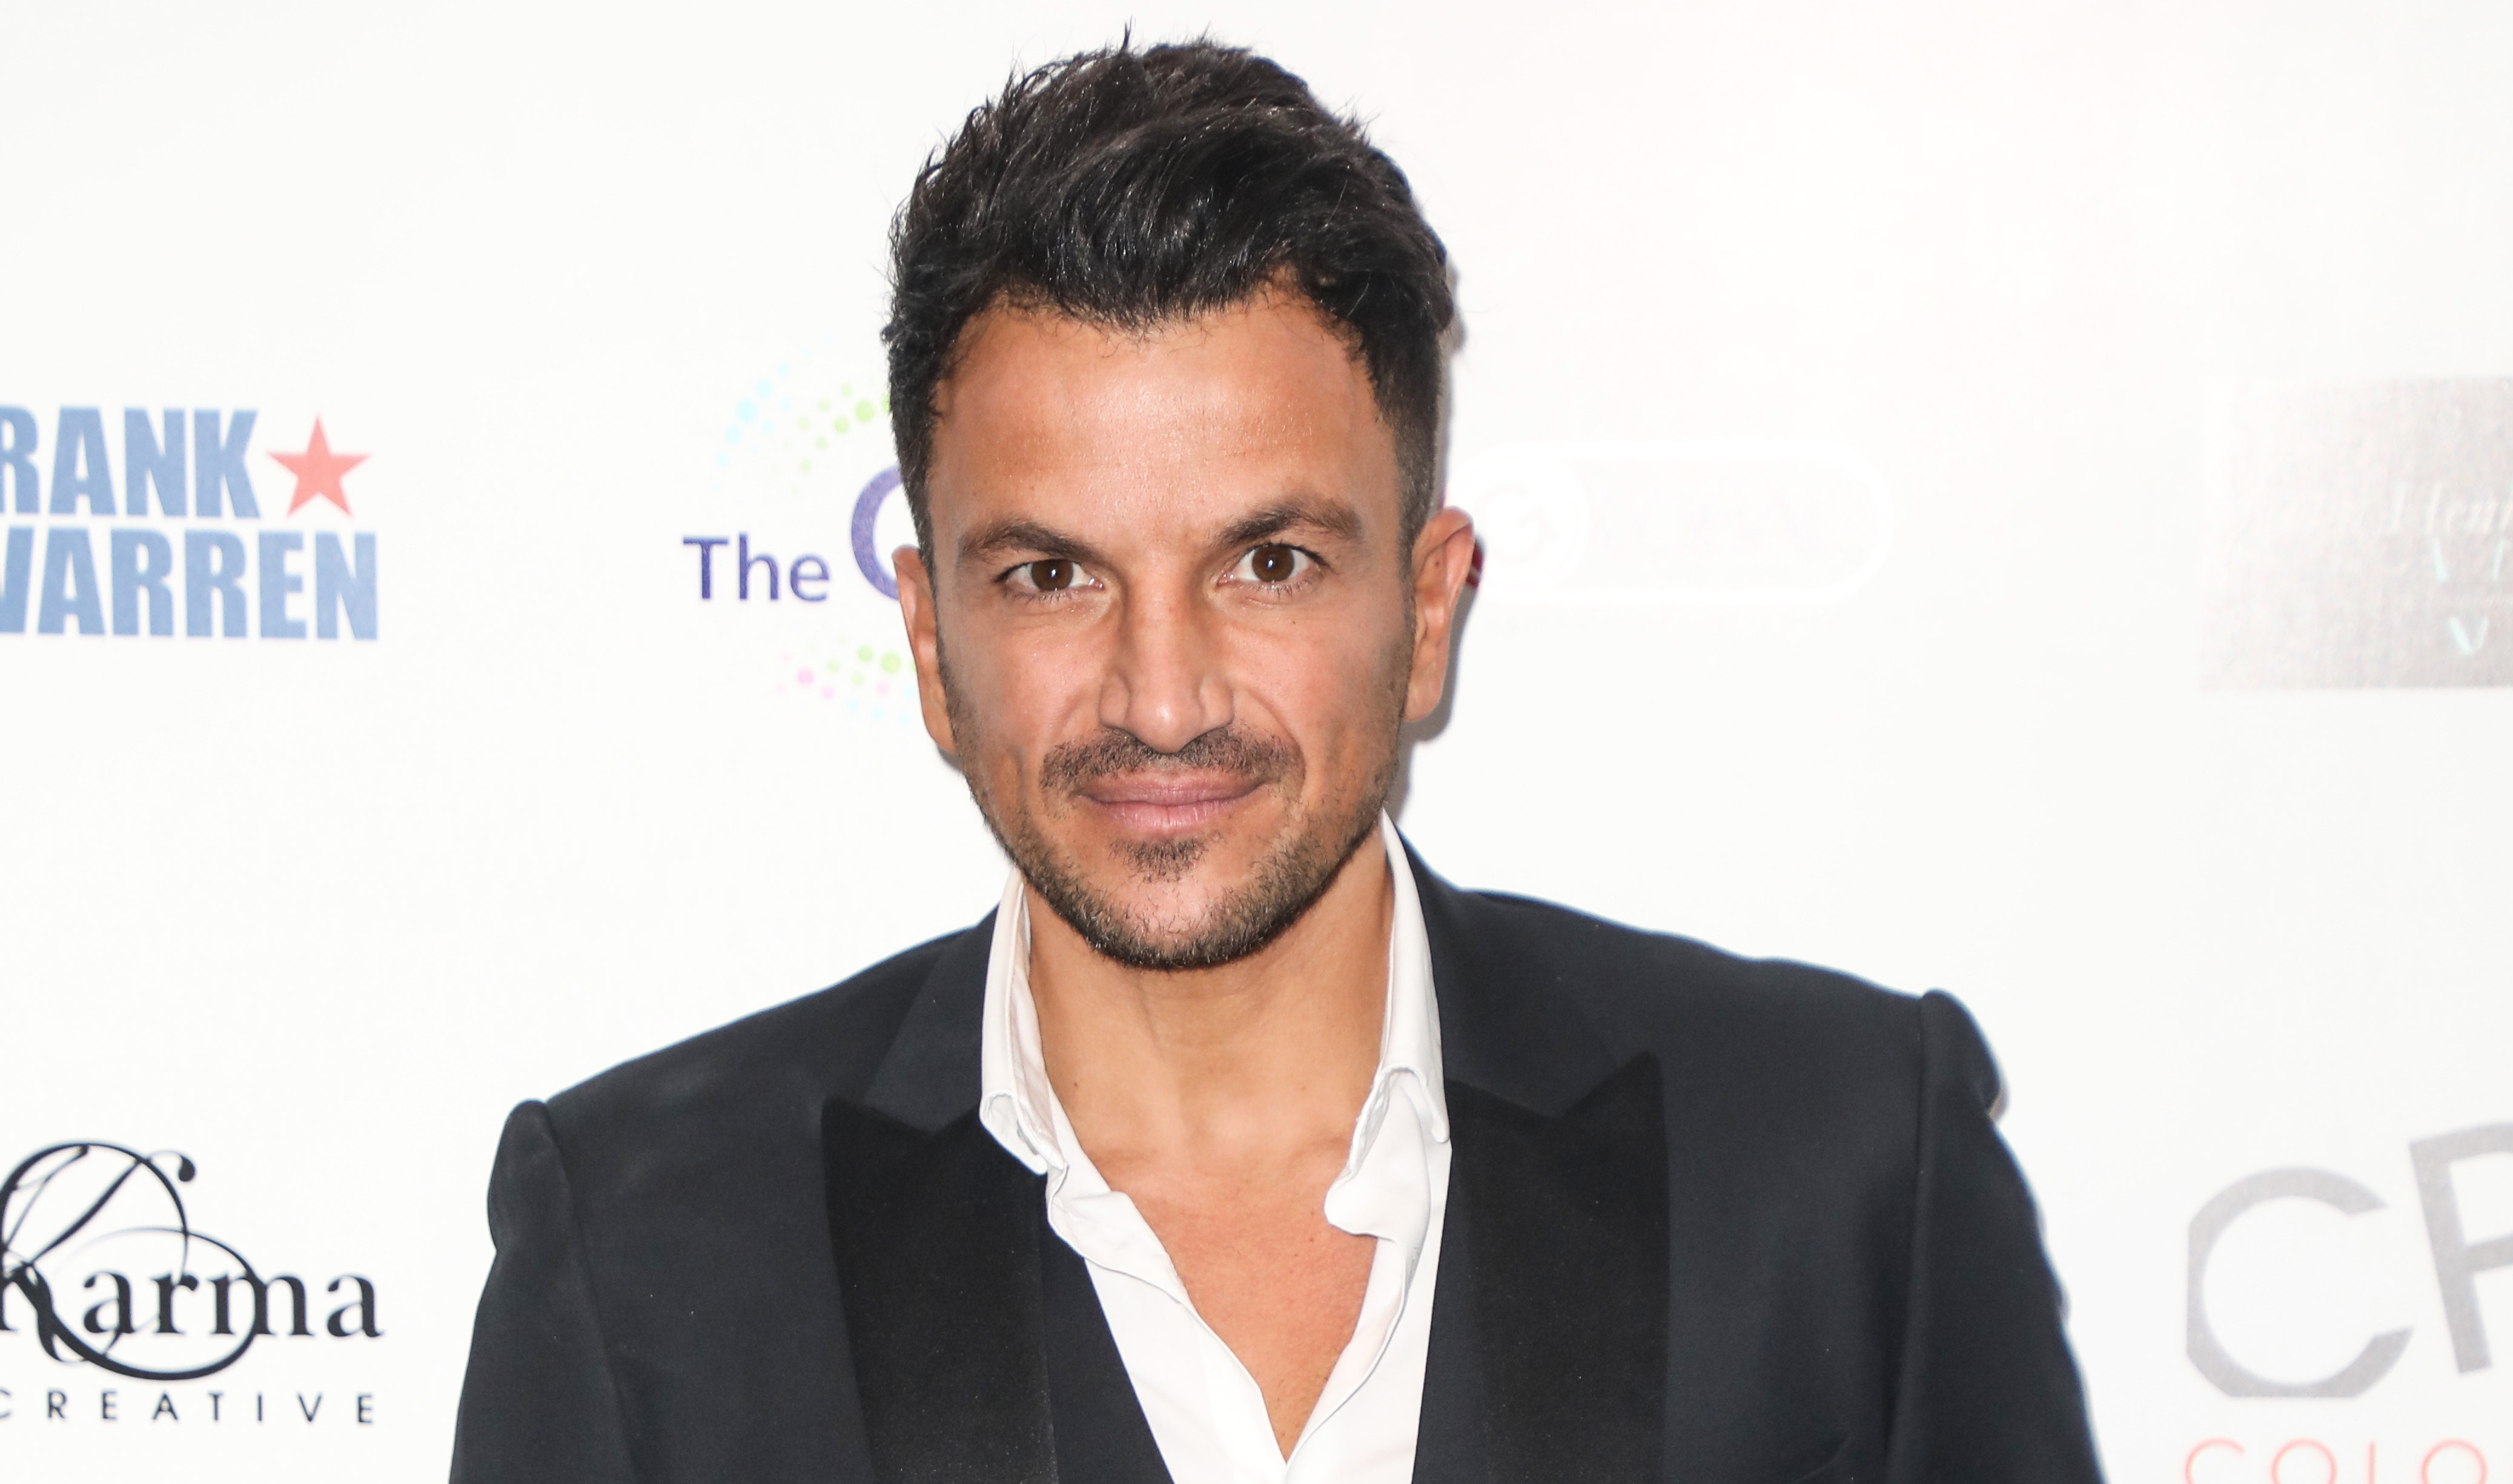 Peter Andre 'feels sorry' for Katie Price as she battles bankruptcy